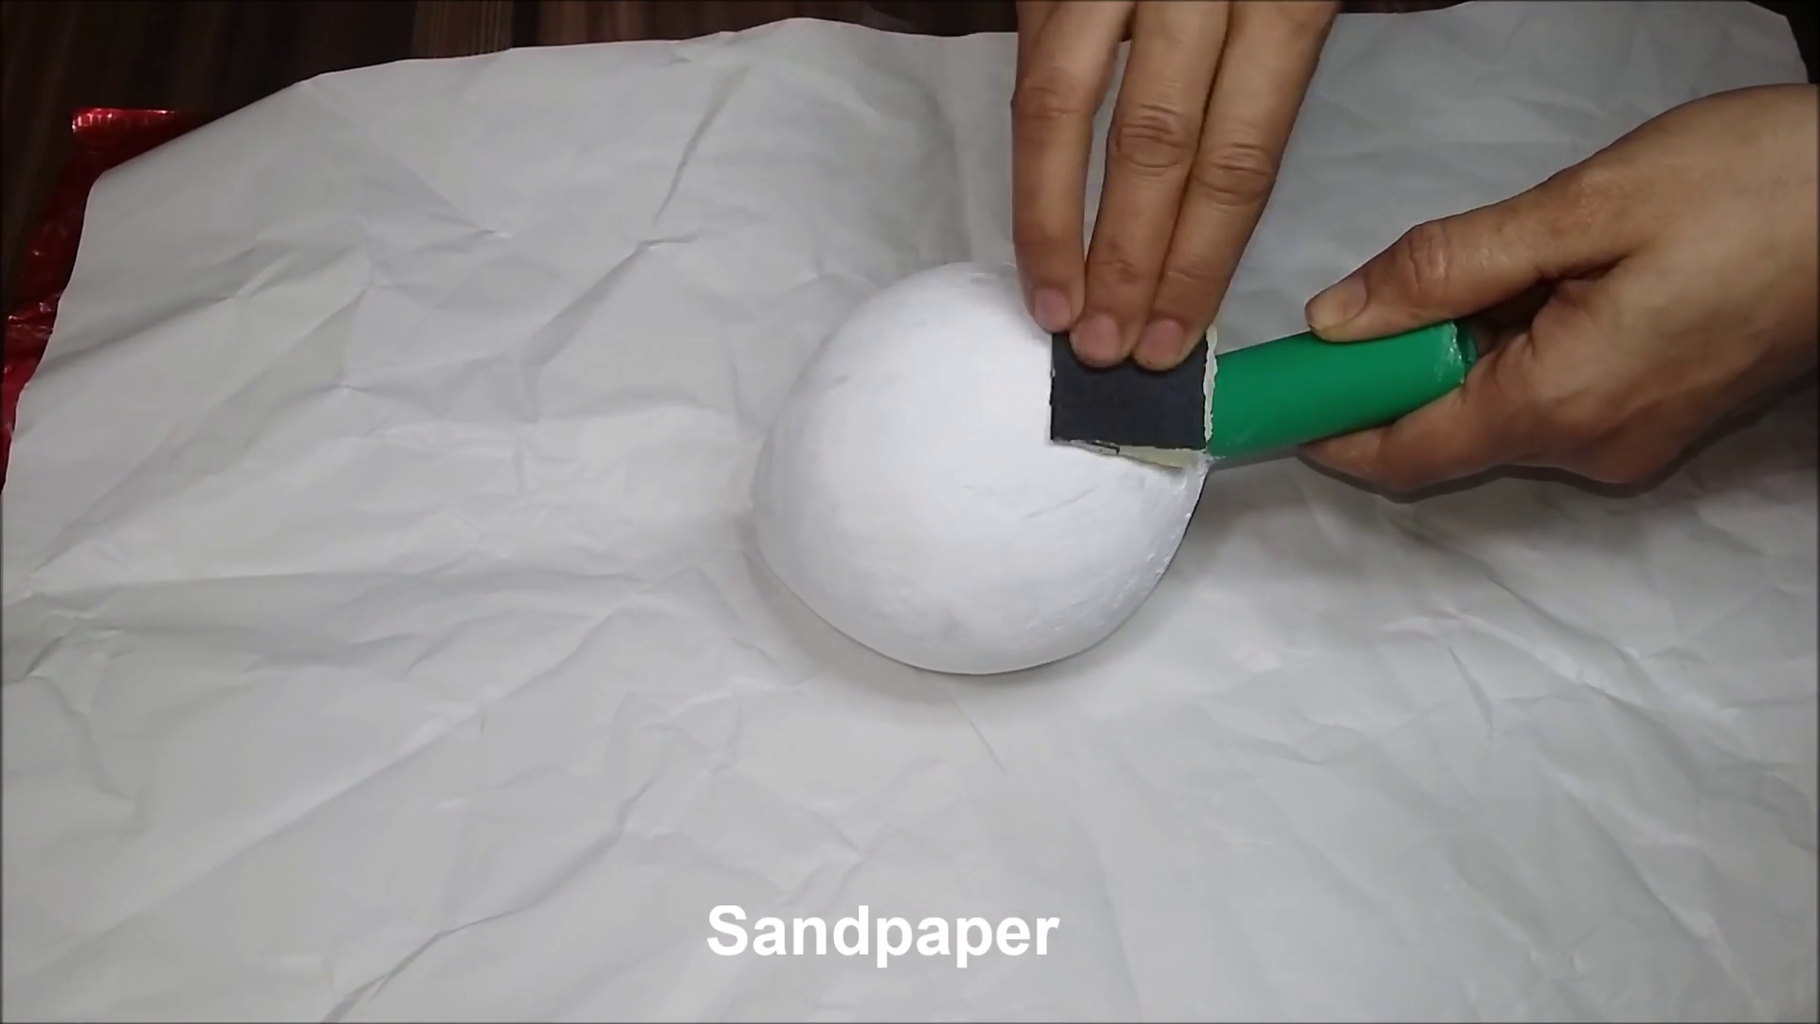 Use Plaster of Paris & Patching Plaster